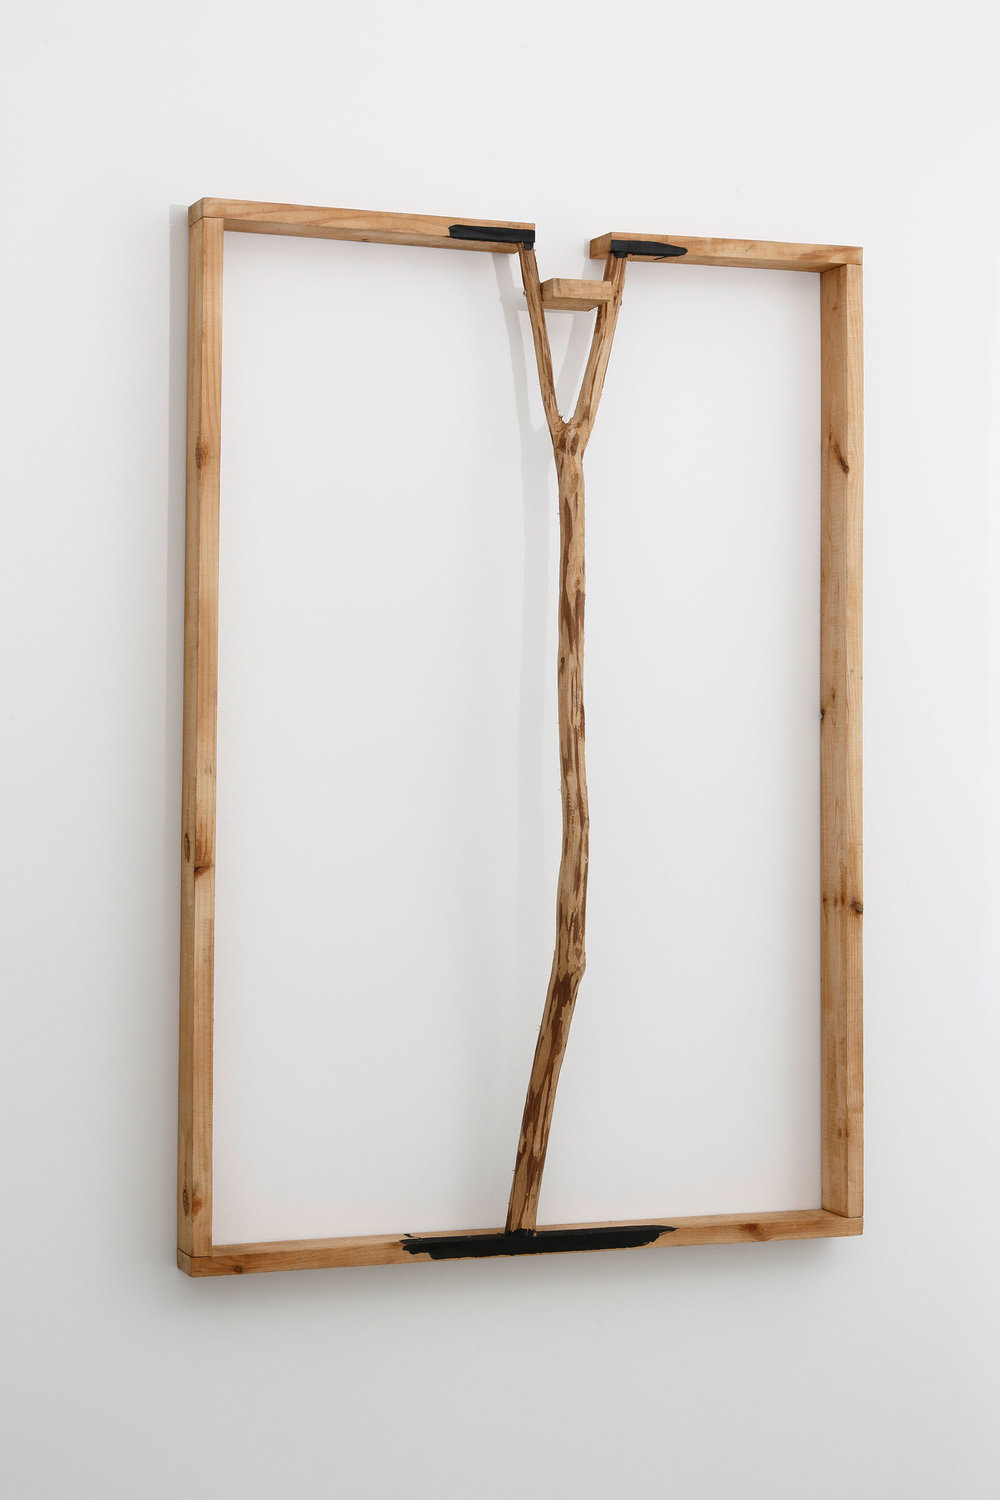 Surrounding Margin, Distanced Body , 1990